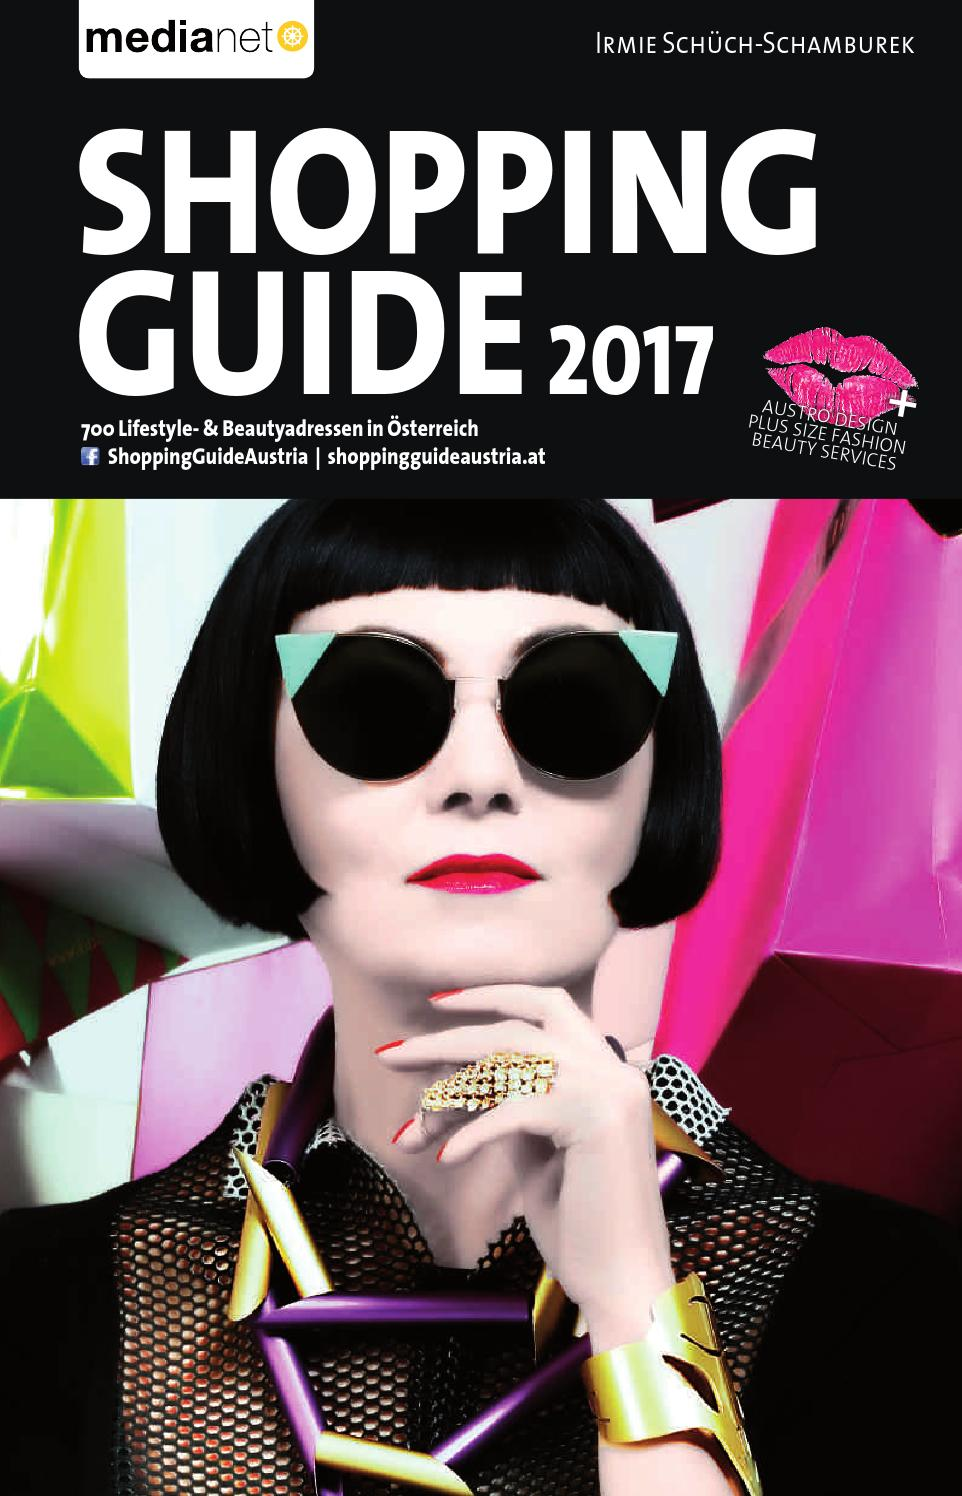 Shopping Guide 2017 by medianet issuu